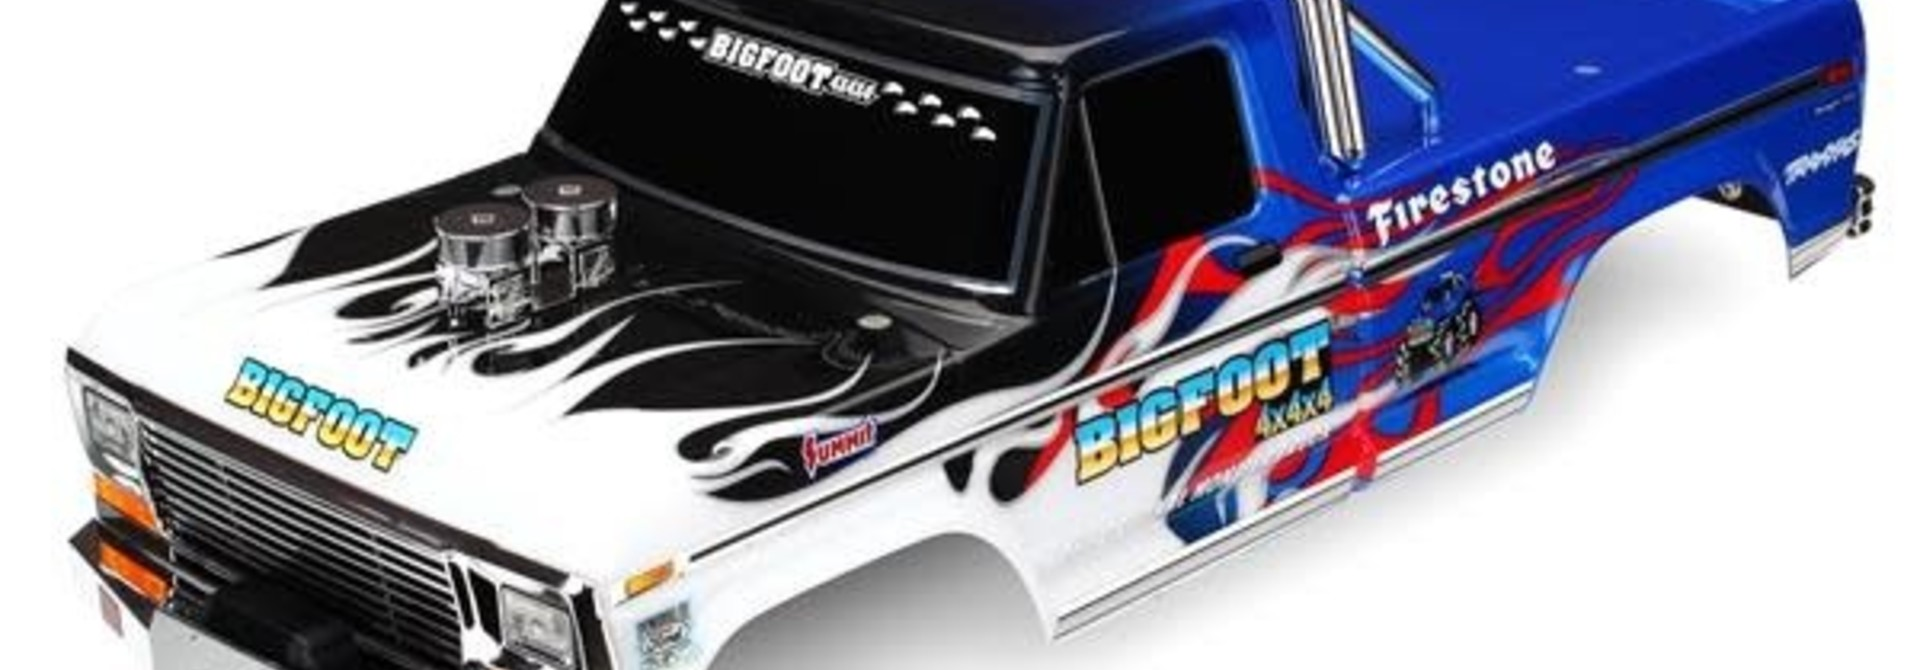 Body, Bigfoot® Flame, Officially Licensereplica (painted, decals applied), TRX3653